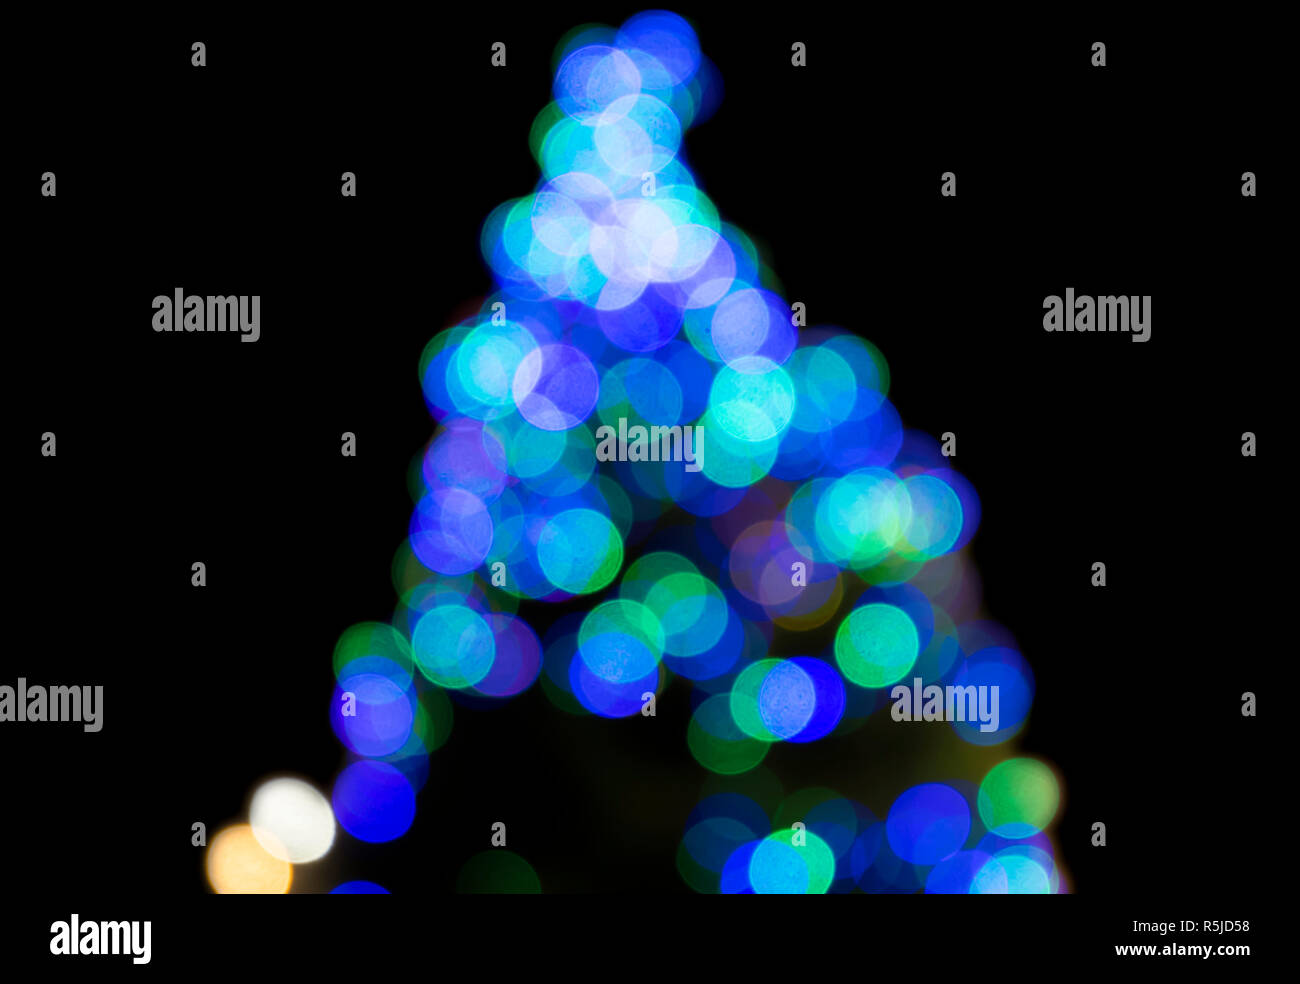 Christmas tree multicoloured lights, blurred to give an abstract effect. - Stock Image